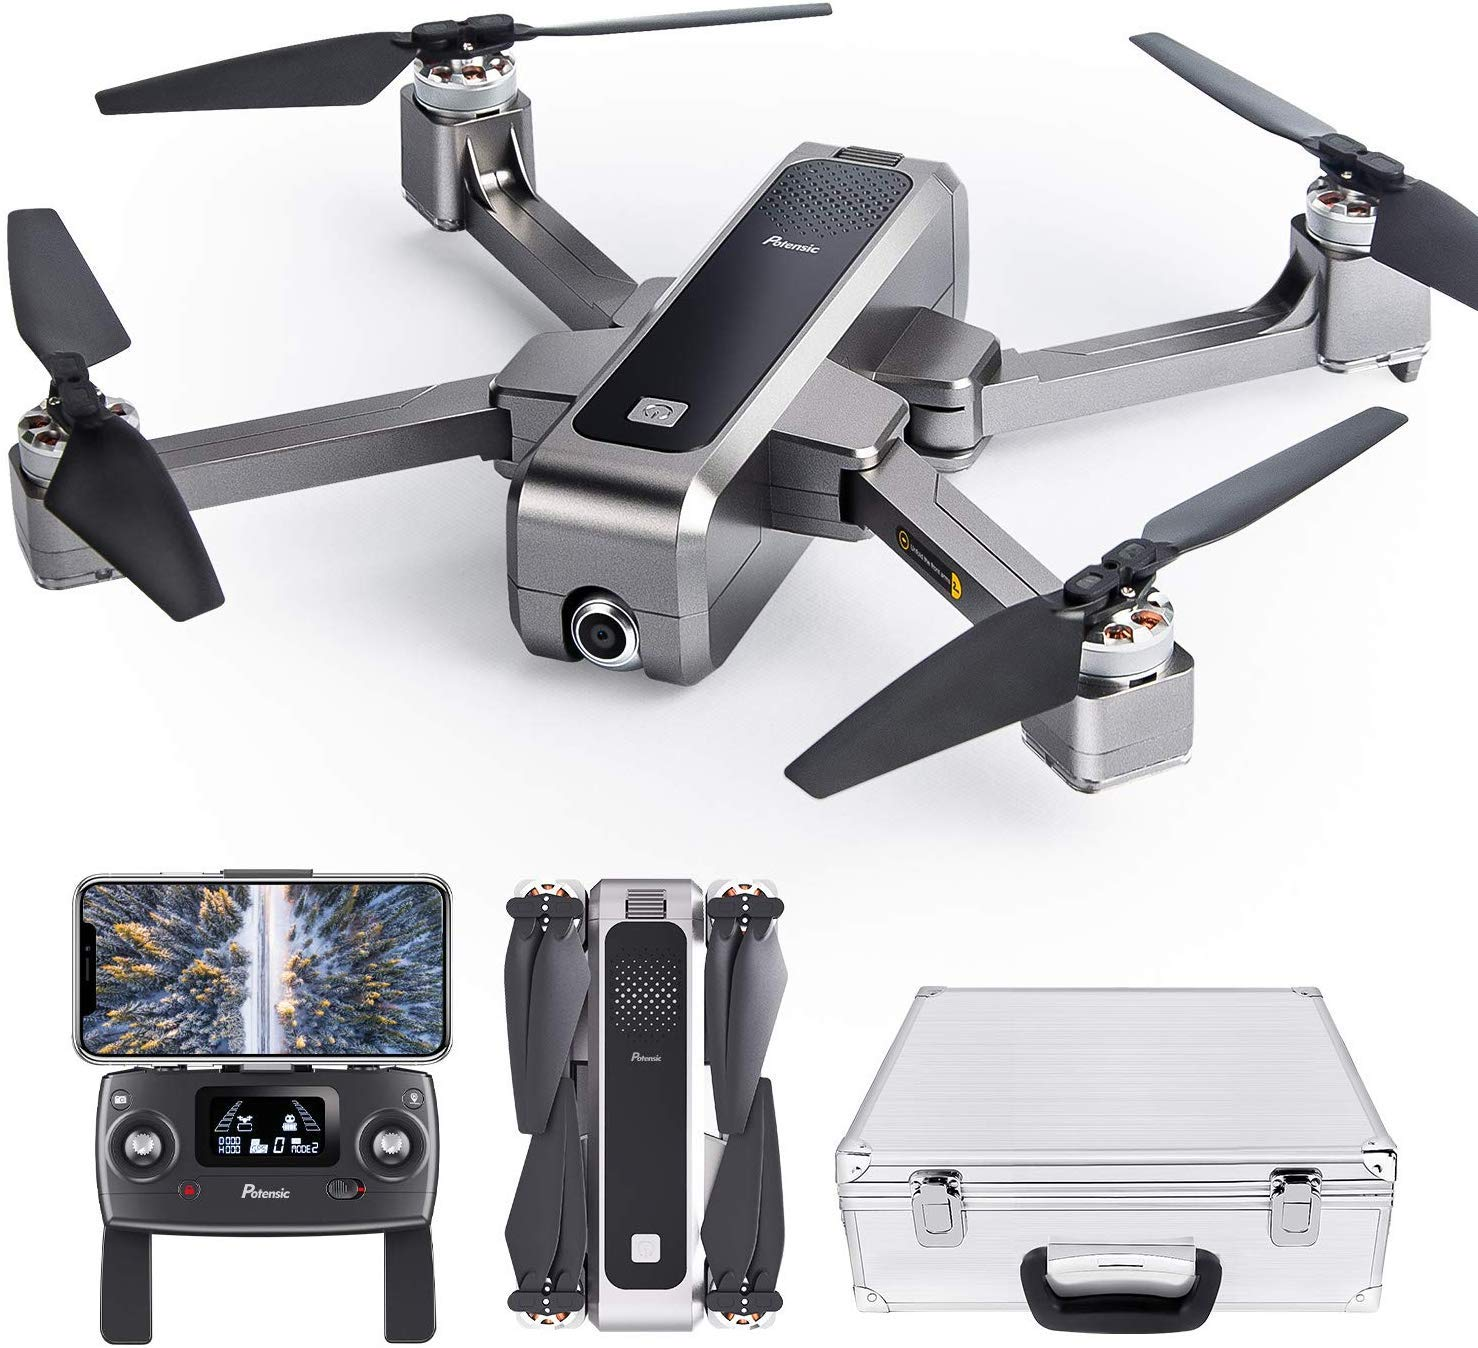 potensic-d88-foldable-drone-5g-wifi-fpv-drone-with-2k-camera-rc-quadcopter-for-adults-and-experts-gps-return-home-ultrasonic-altitude-setting-optical-flow-positioning-brushless-motors-w